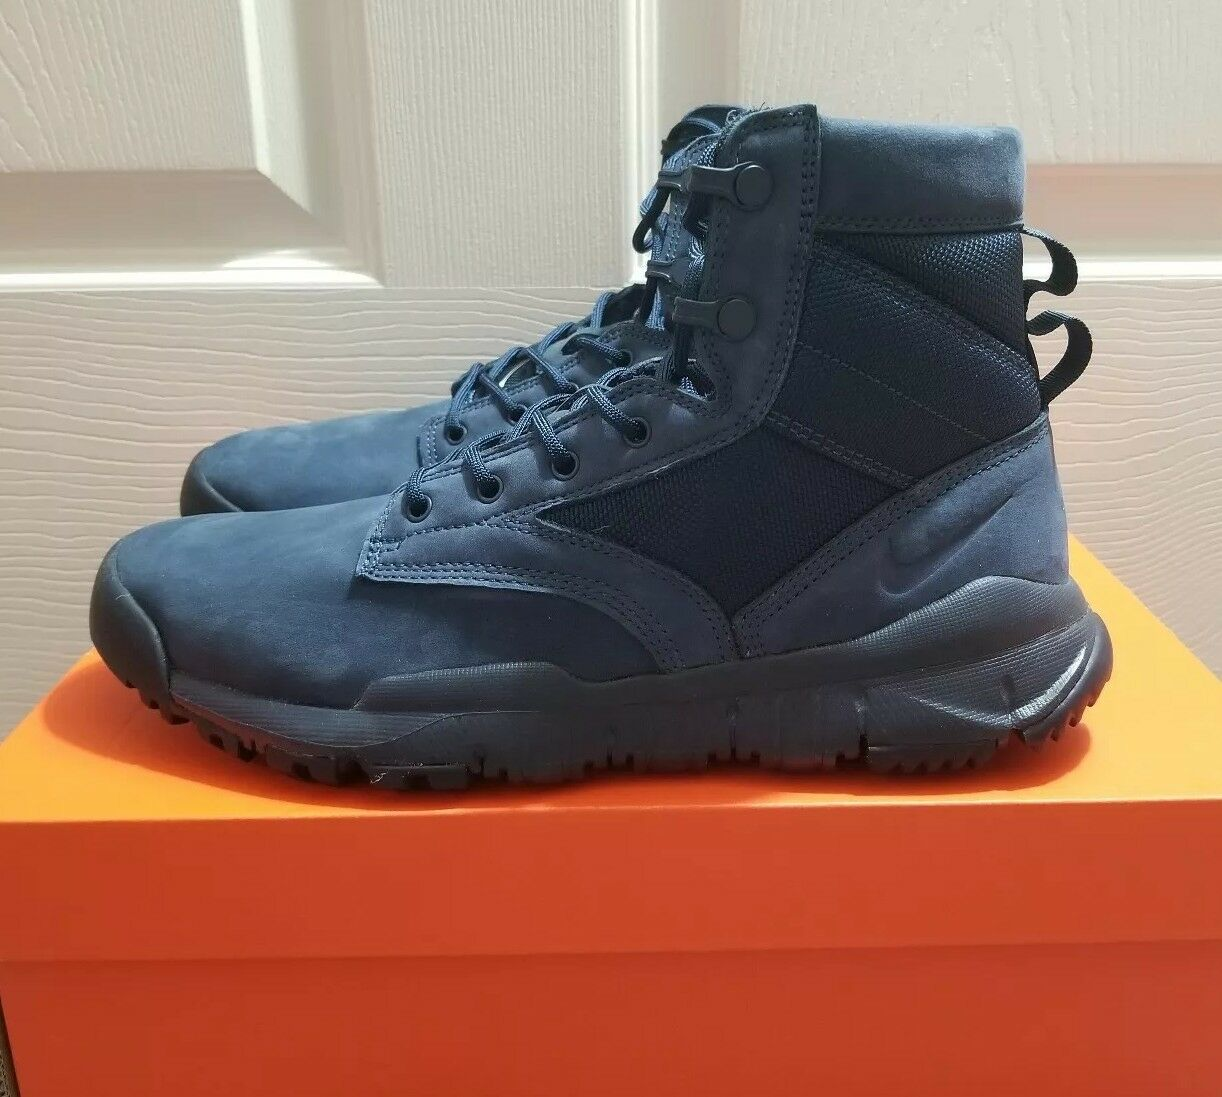 Nike Special Field Boot 6  Inches NSW Leather Navy Boots shoes Sz 9 (862507 401)